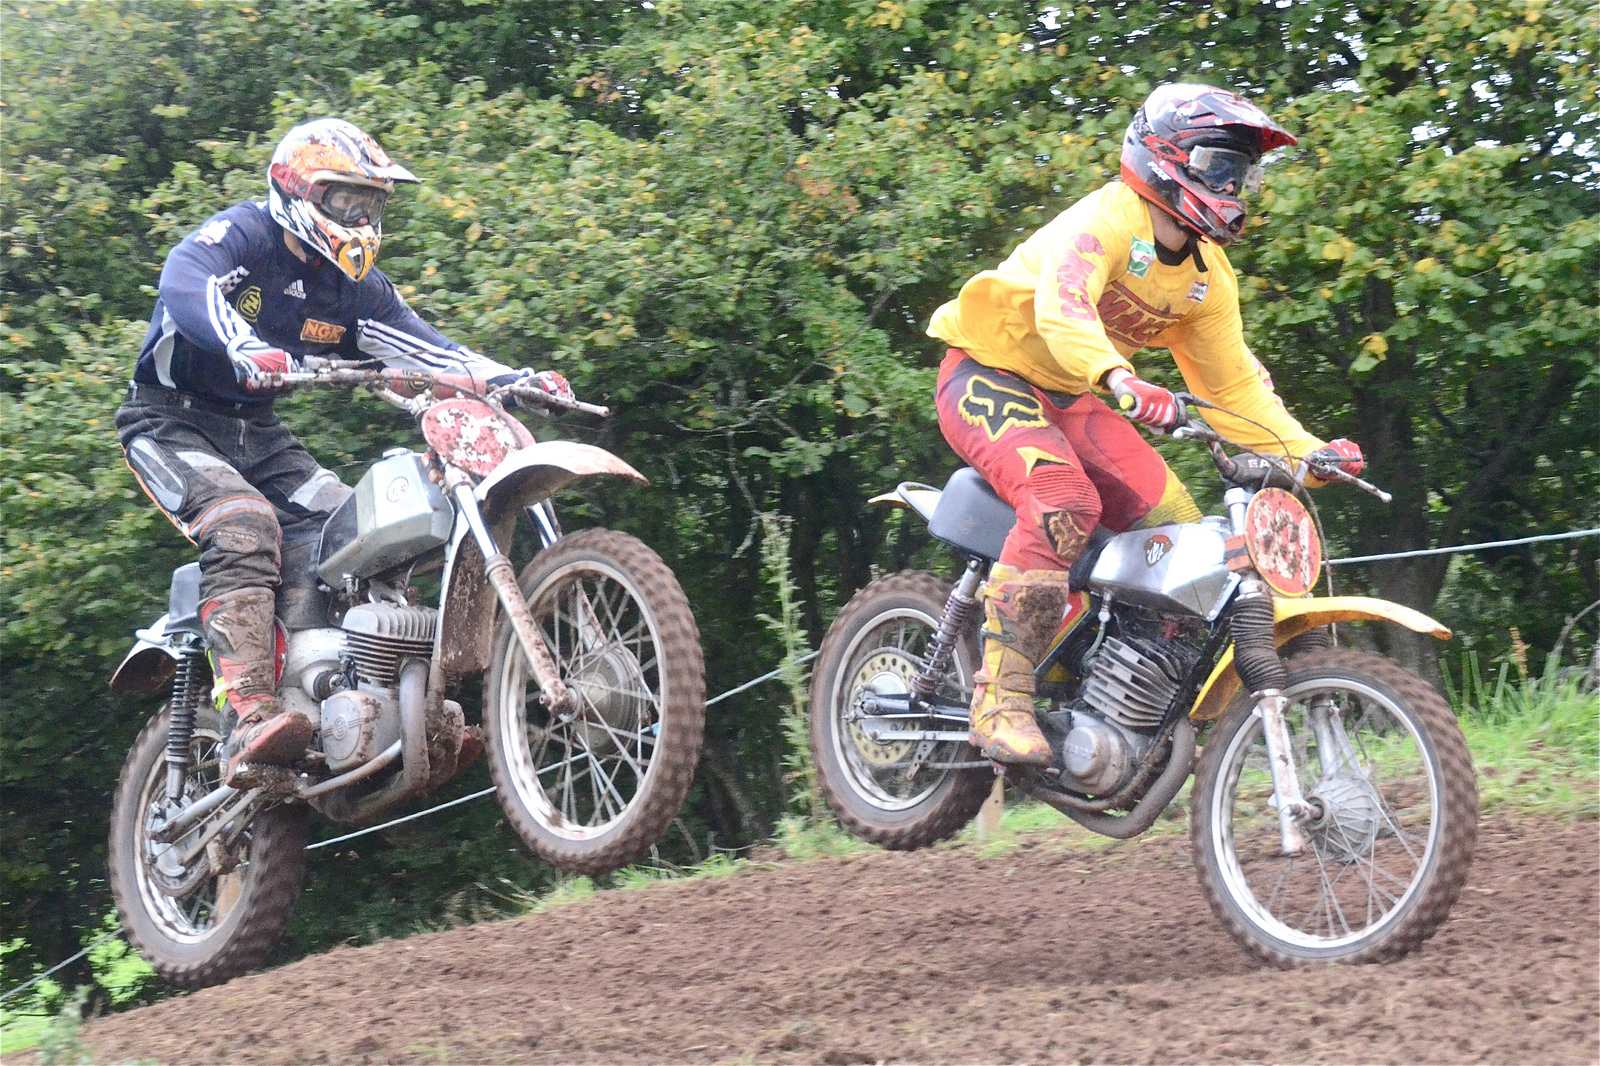 Llanthony Classic Scramble Photos September 2015 classicdirtbikerider.com..29